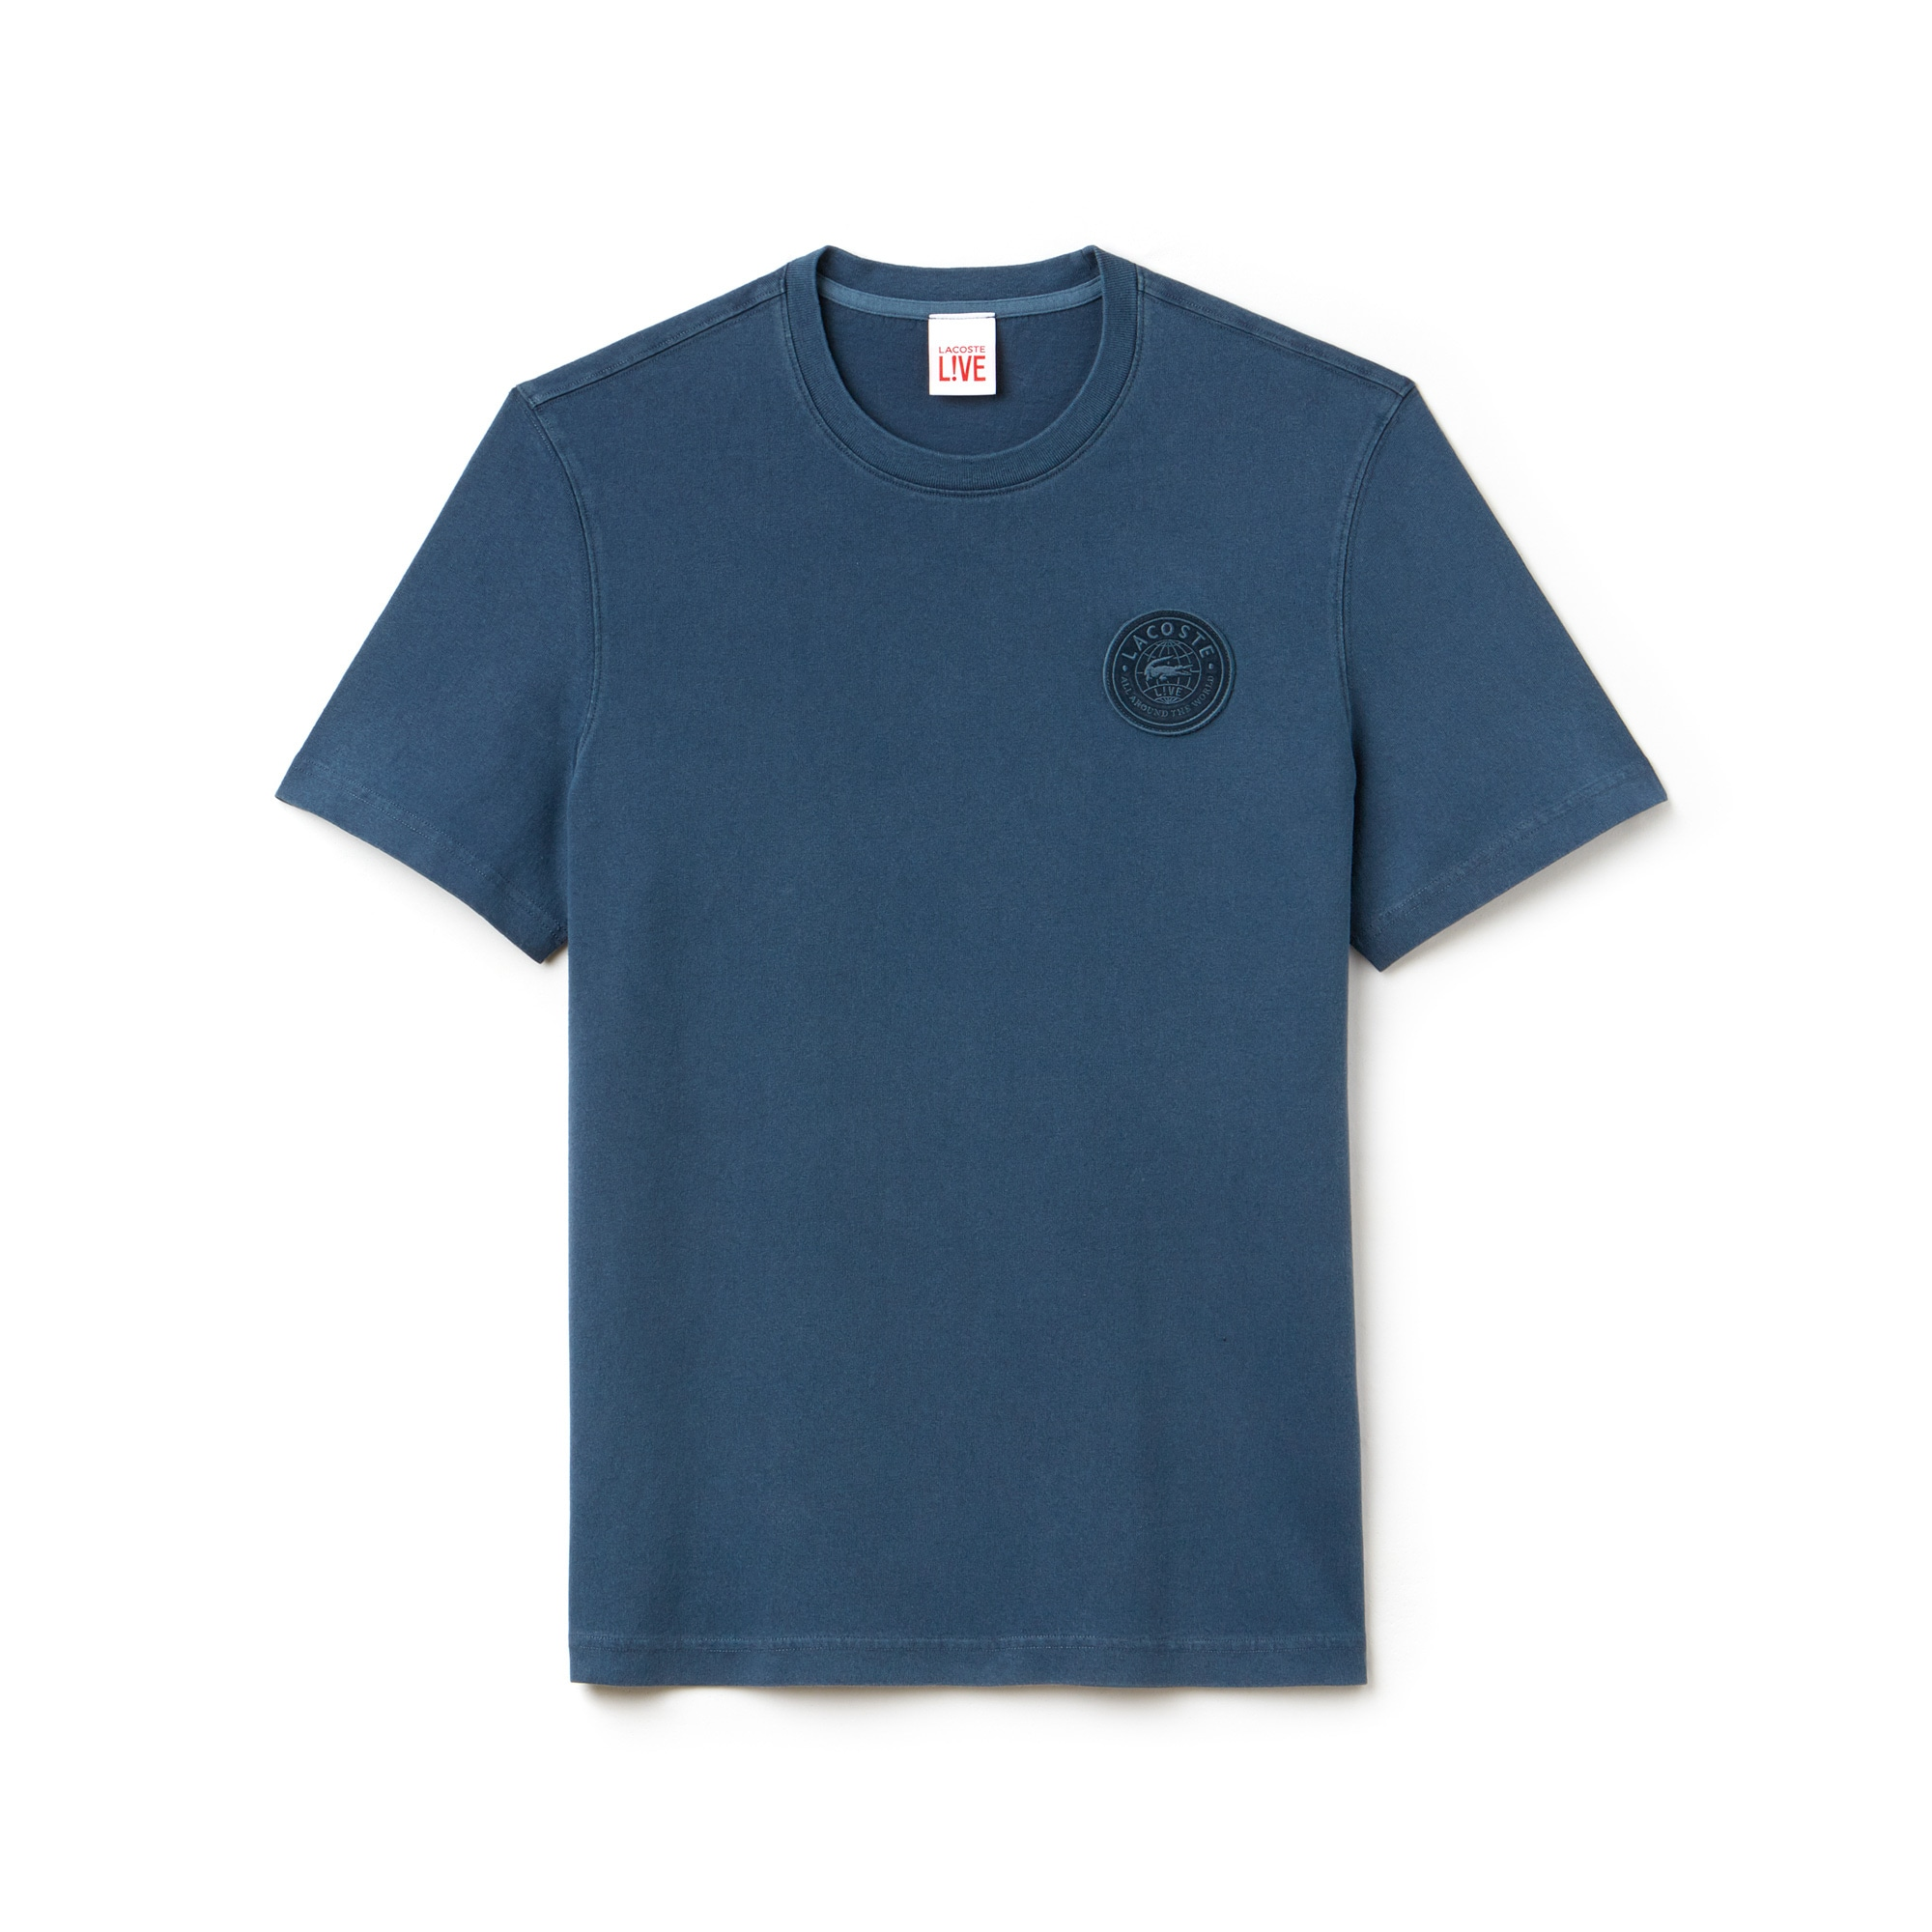 Men's Lacoste LIVE Crew Neck Faded Jersey T-Shirt With Badge